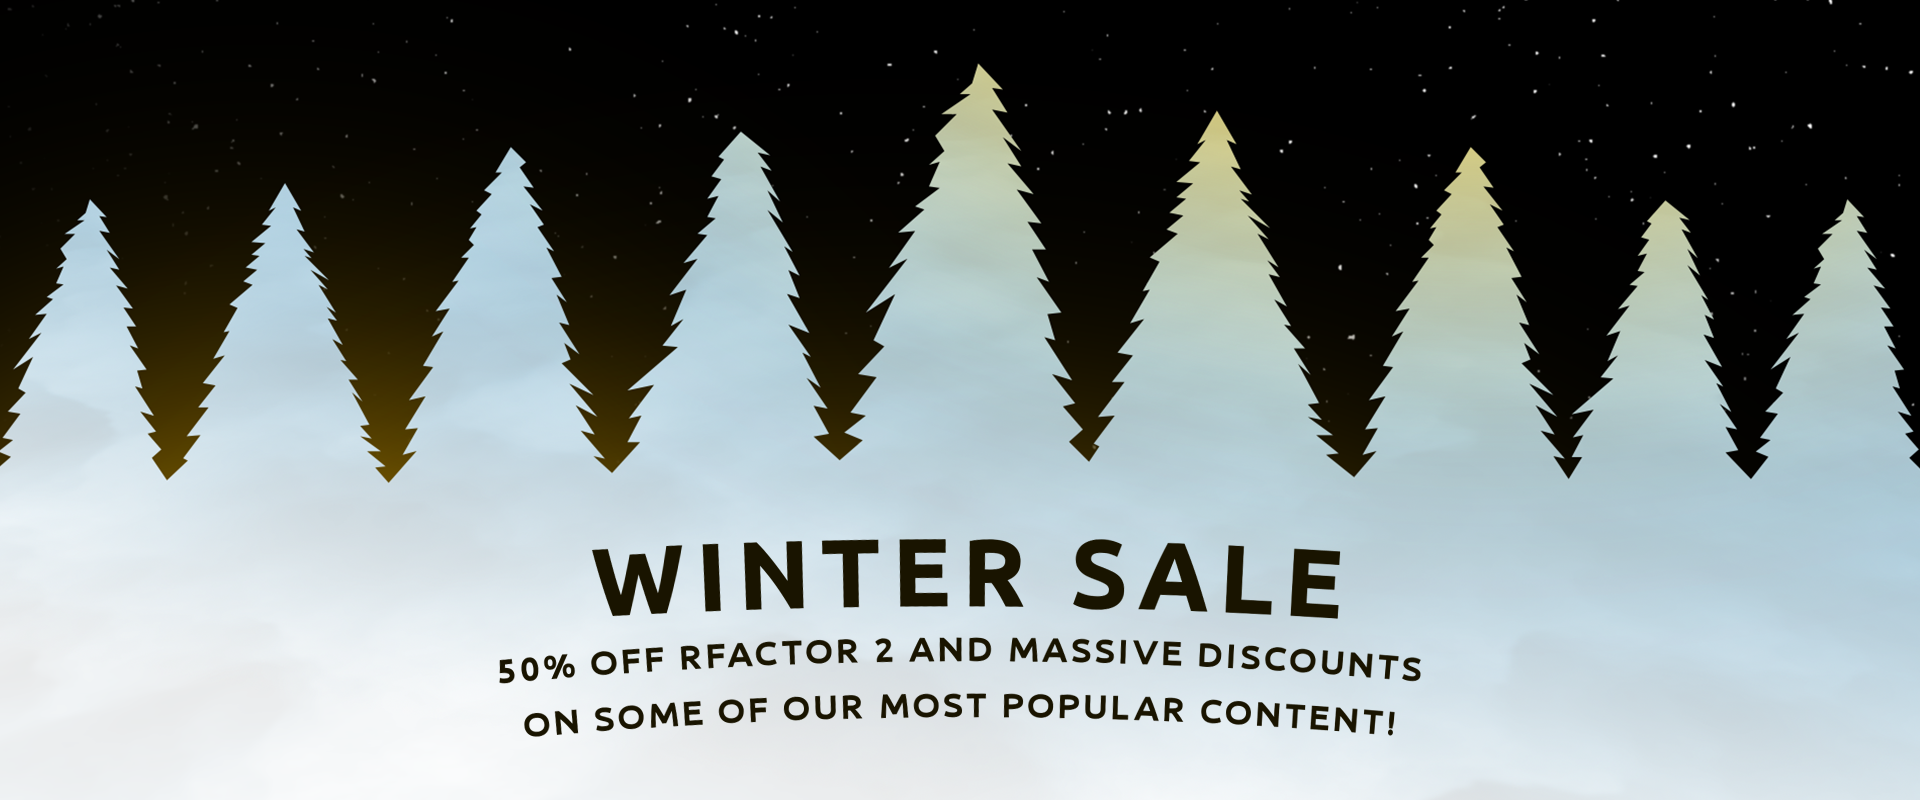 winter_sale_2019_header_wordpress.png